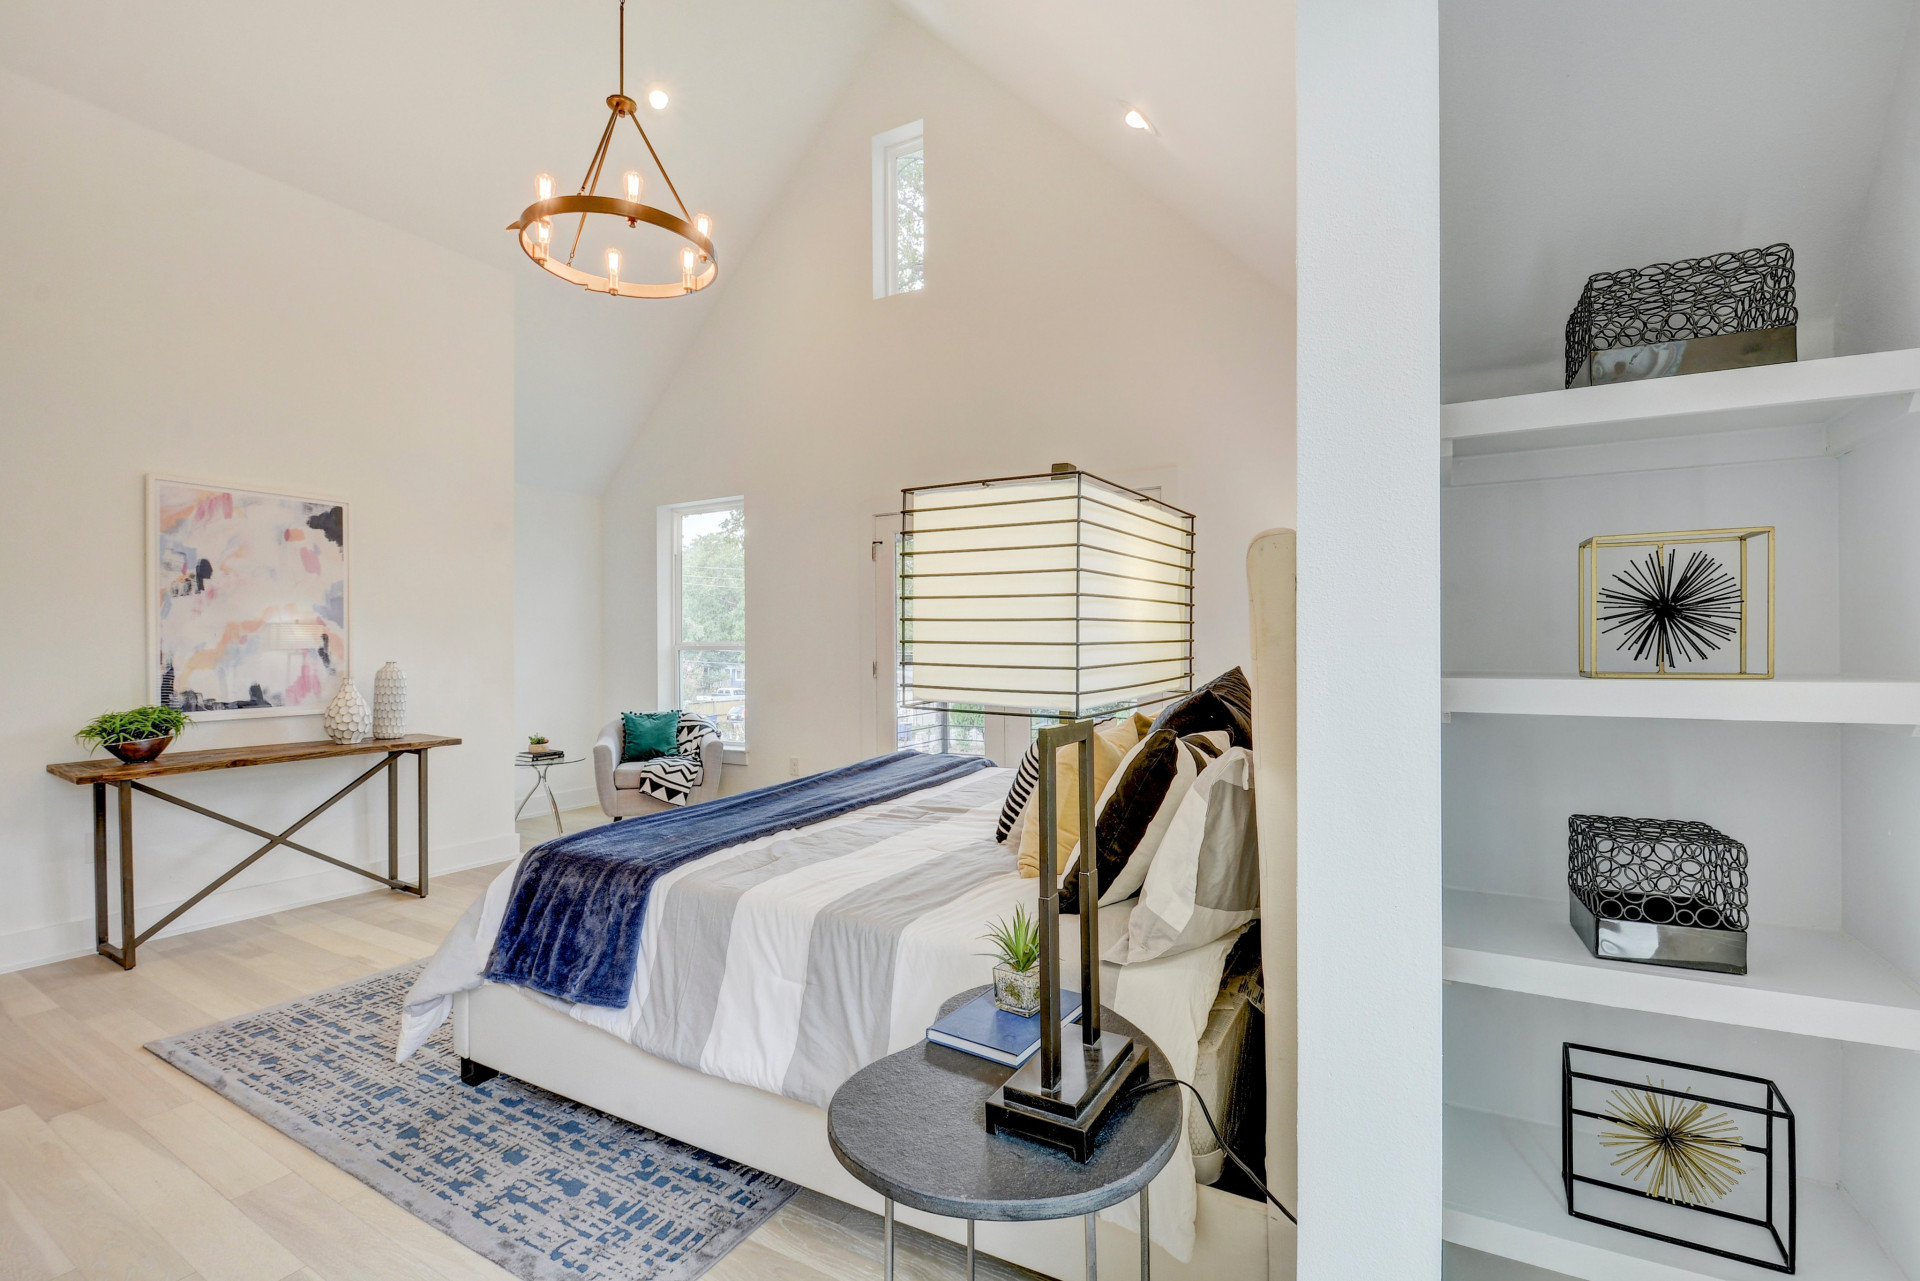 Dream Master Bedroom with vaulted ceilings, balcony, built-ins and white oak floors.